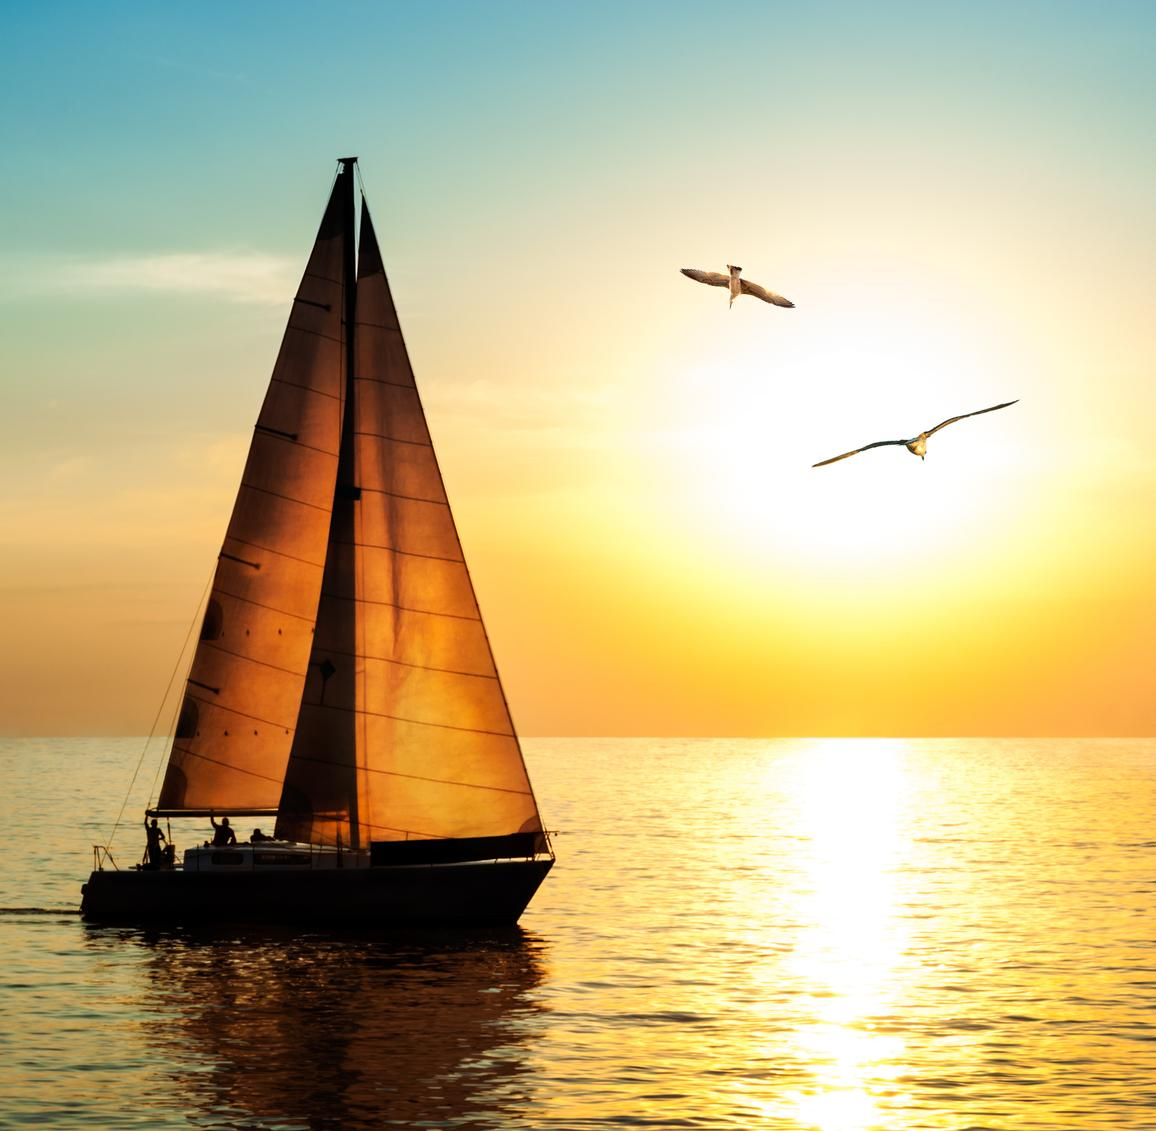 Sailboat at sunset with seagulls